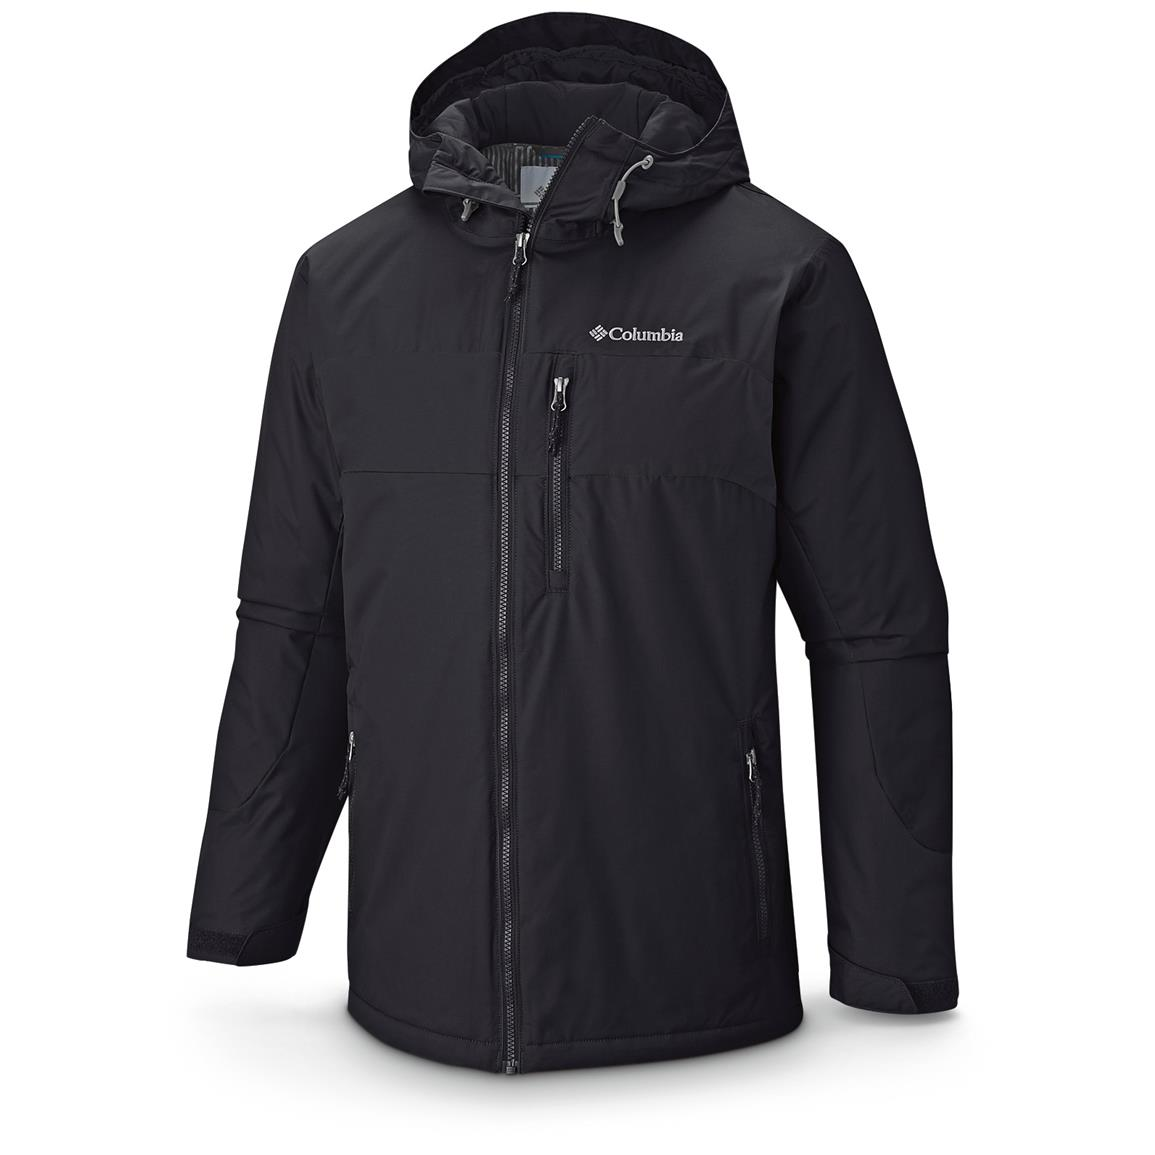 Columbia Men's Winterswept Insulated Waterproof Jacket, Black